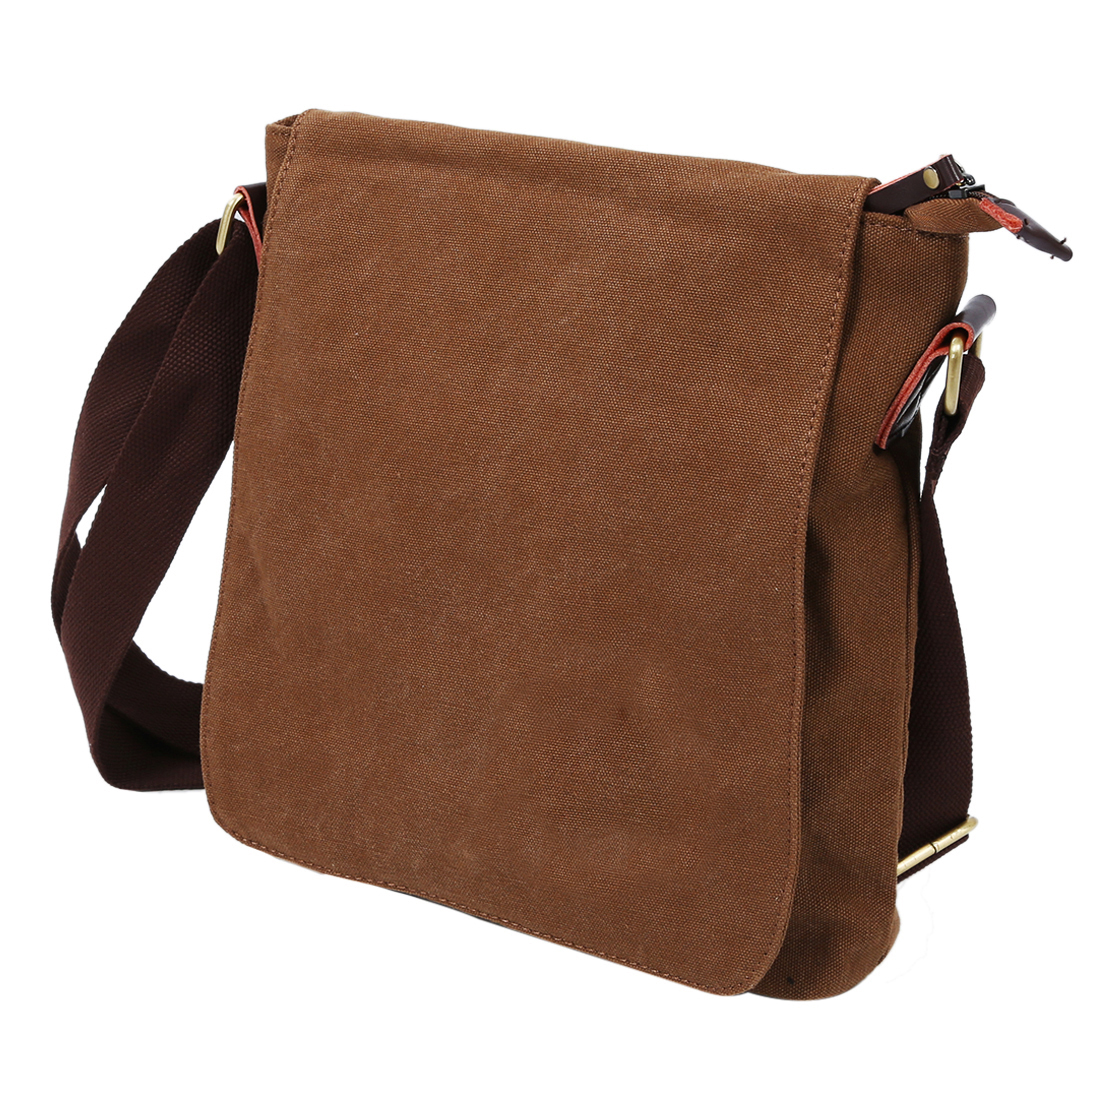 Mens Handbag Shoulder Bag Adjustable shoulder strap Canvas Coffee